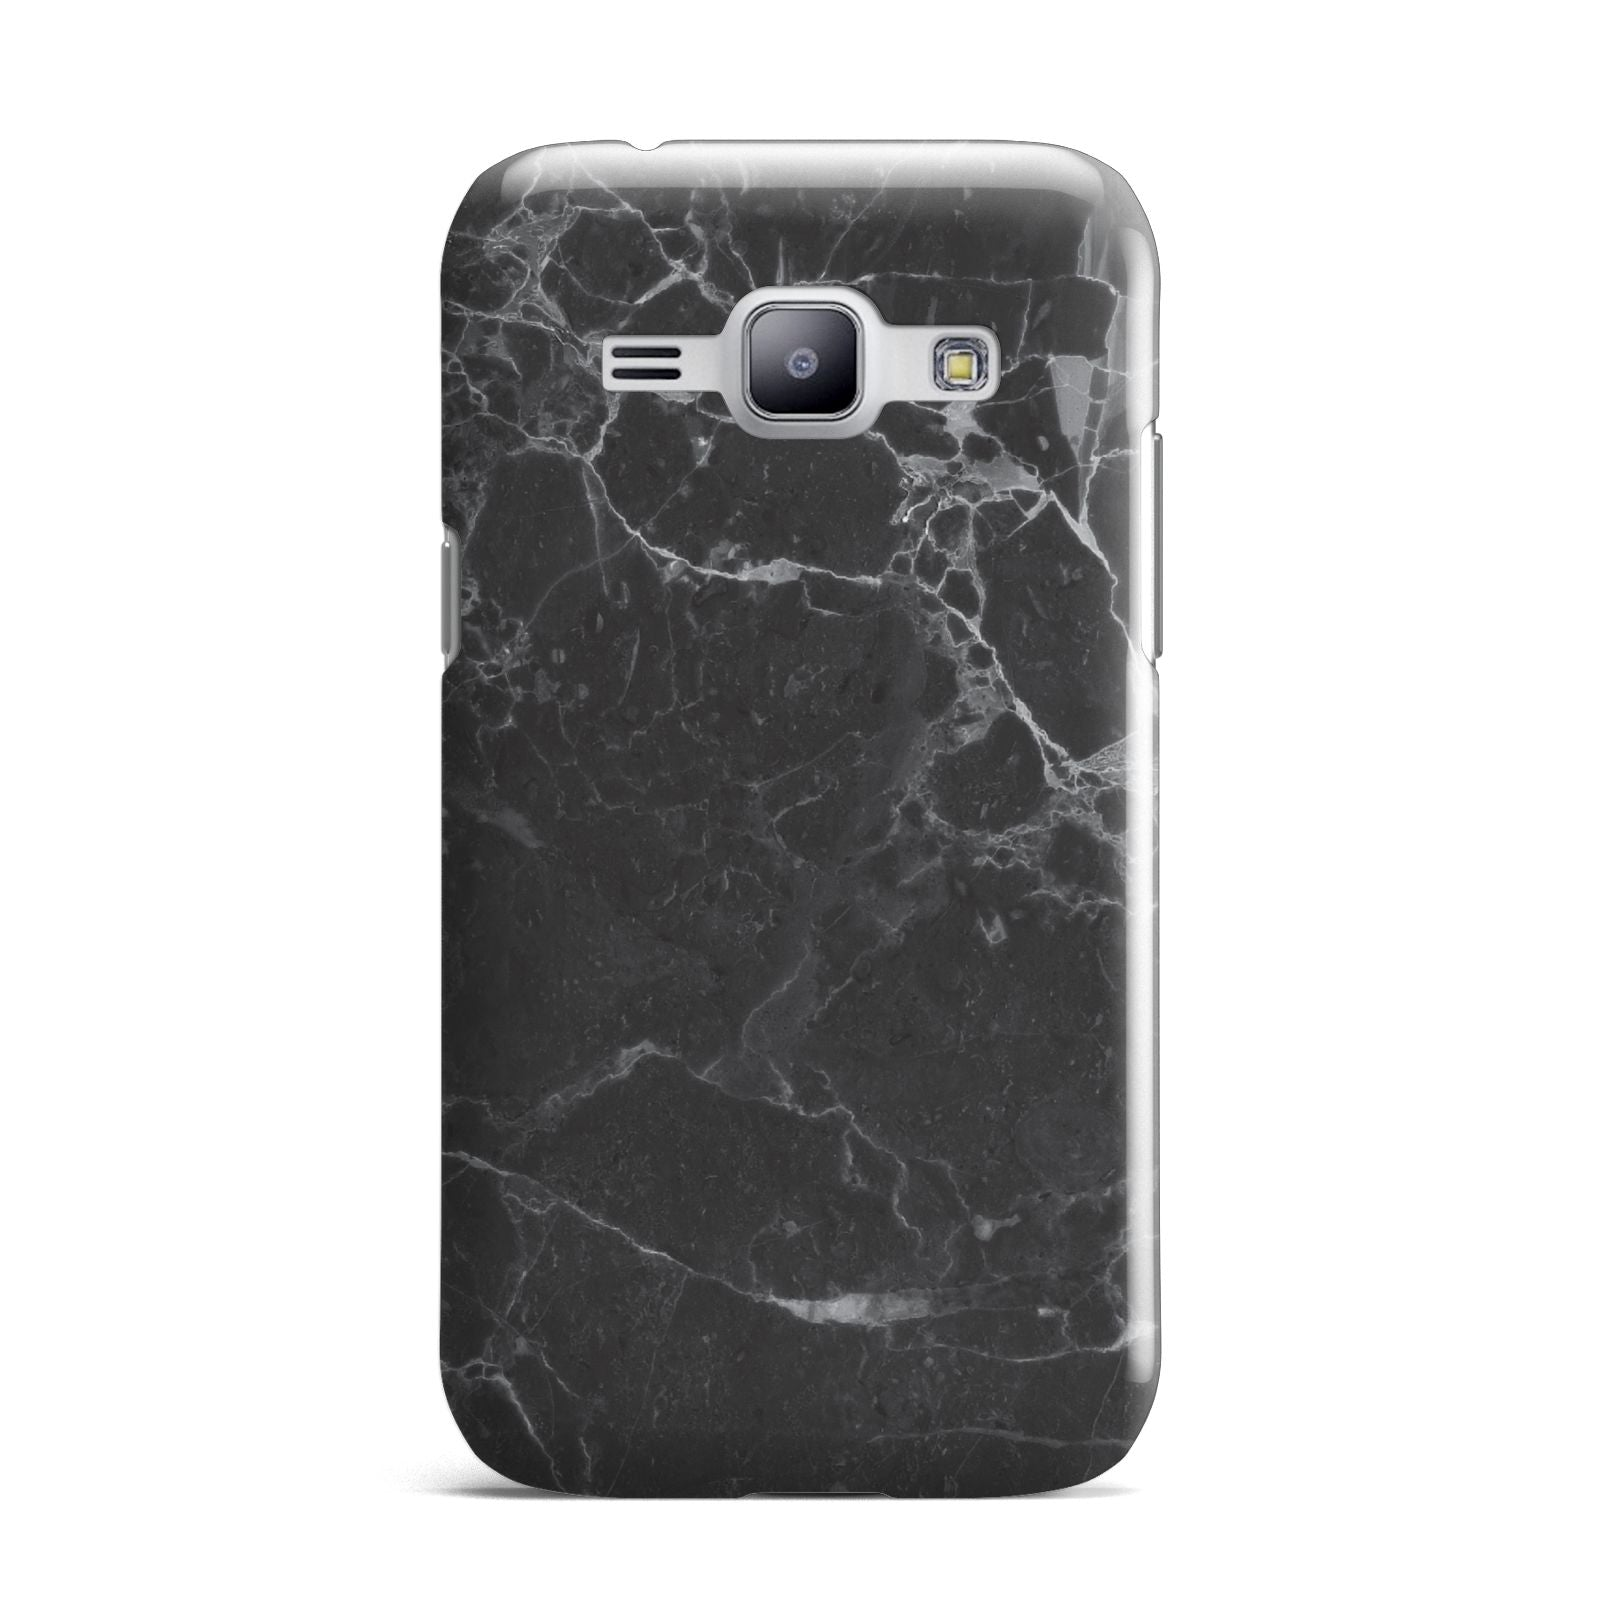 Faux Marble Effect Black Samsung Galaxy J1 2015 Case